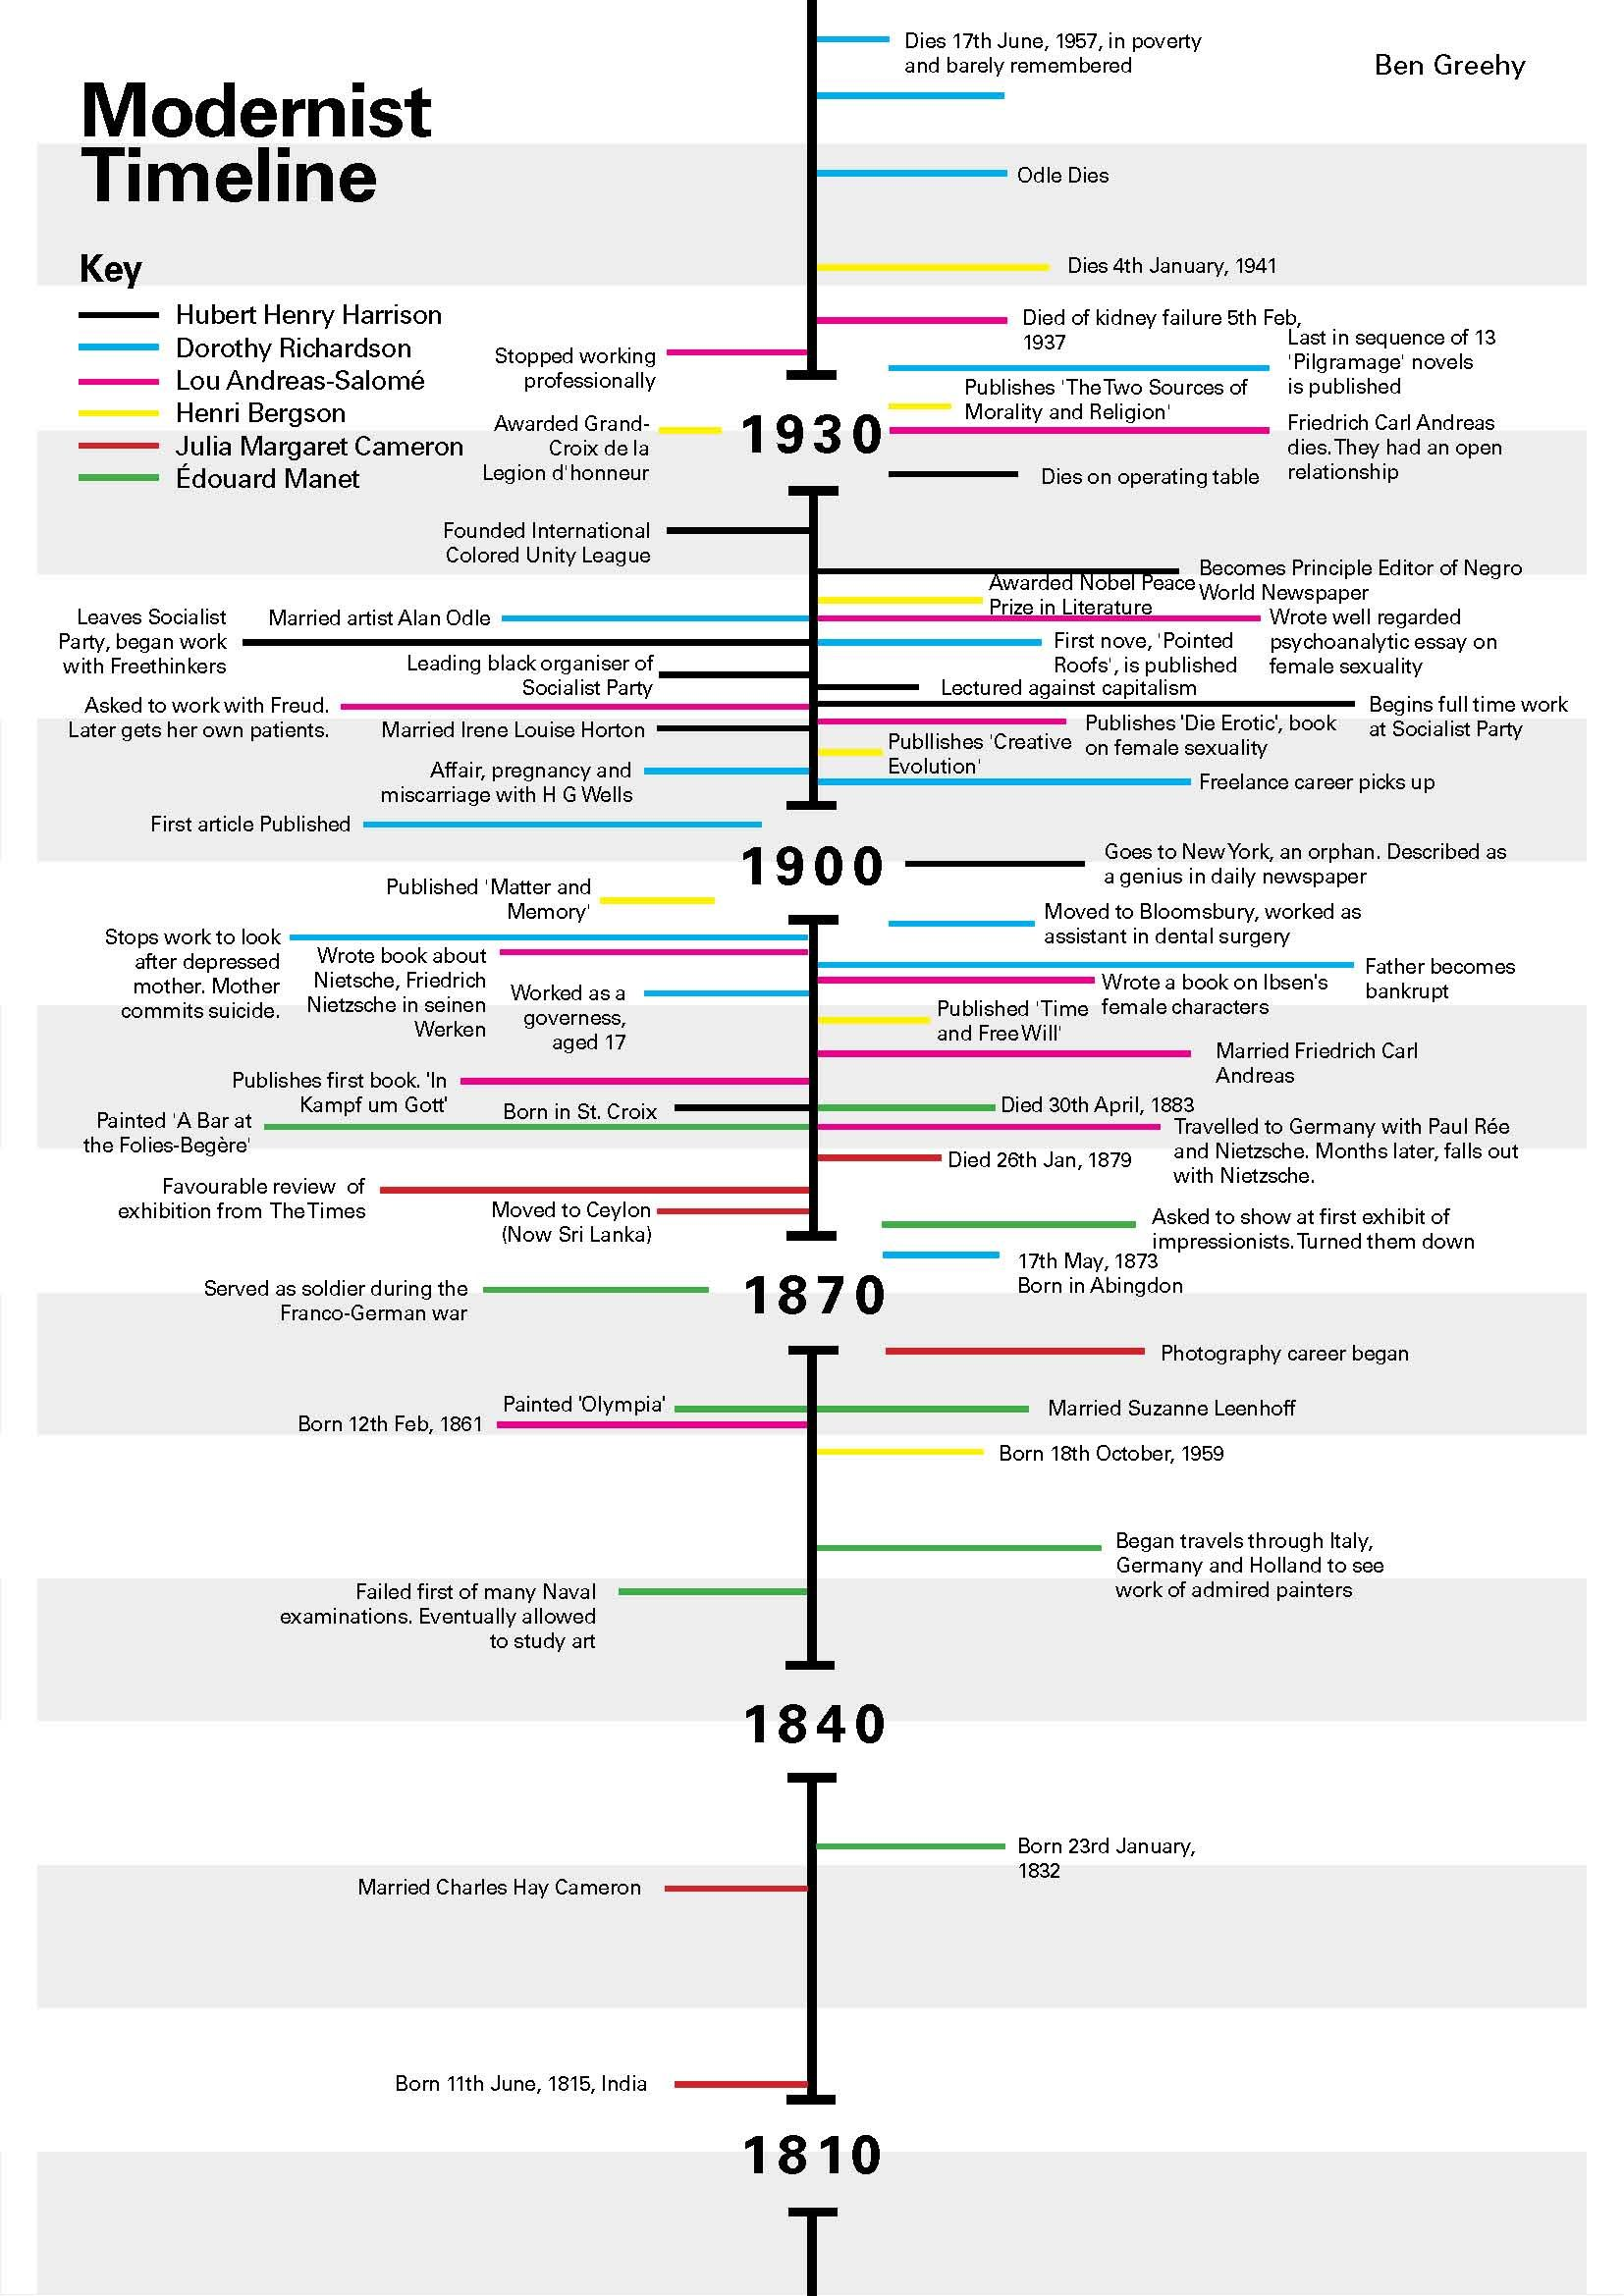 Post modern art timeline google search art history timeline post modern art timeline google search gamestrikefo Image collections